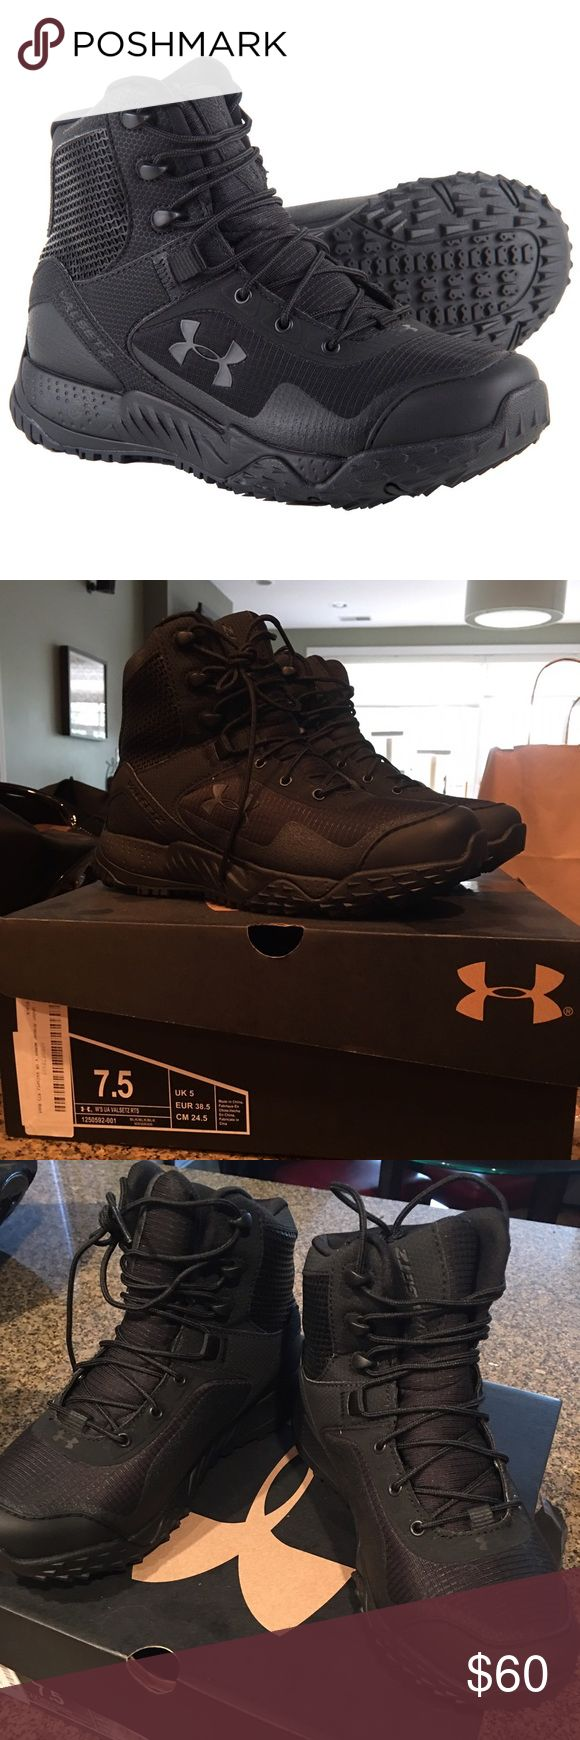 Under Armour Women's Tactical Boots New in box Under Armour women's Valsetz RTS tactical boots. These boots are brand new and never worn. Perfect for ladies in law enforcement or for for shooting/hunting. Under Armour Shoes